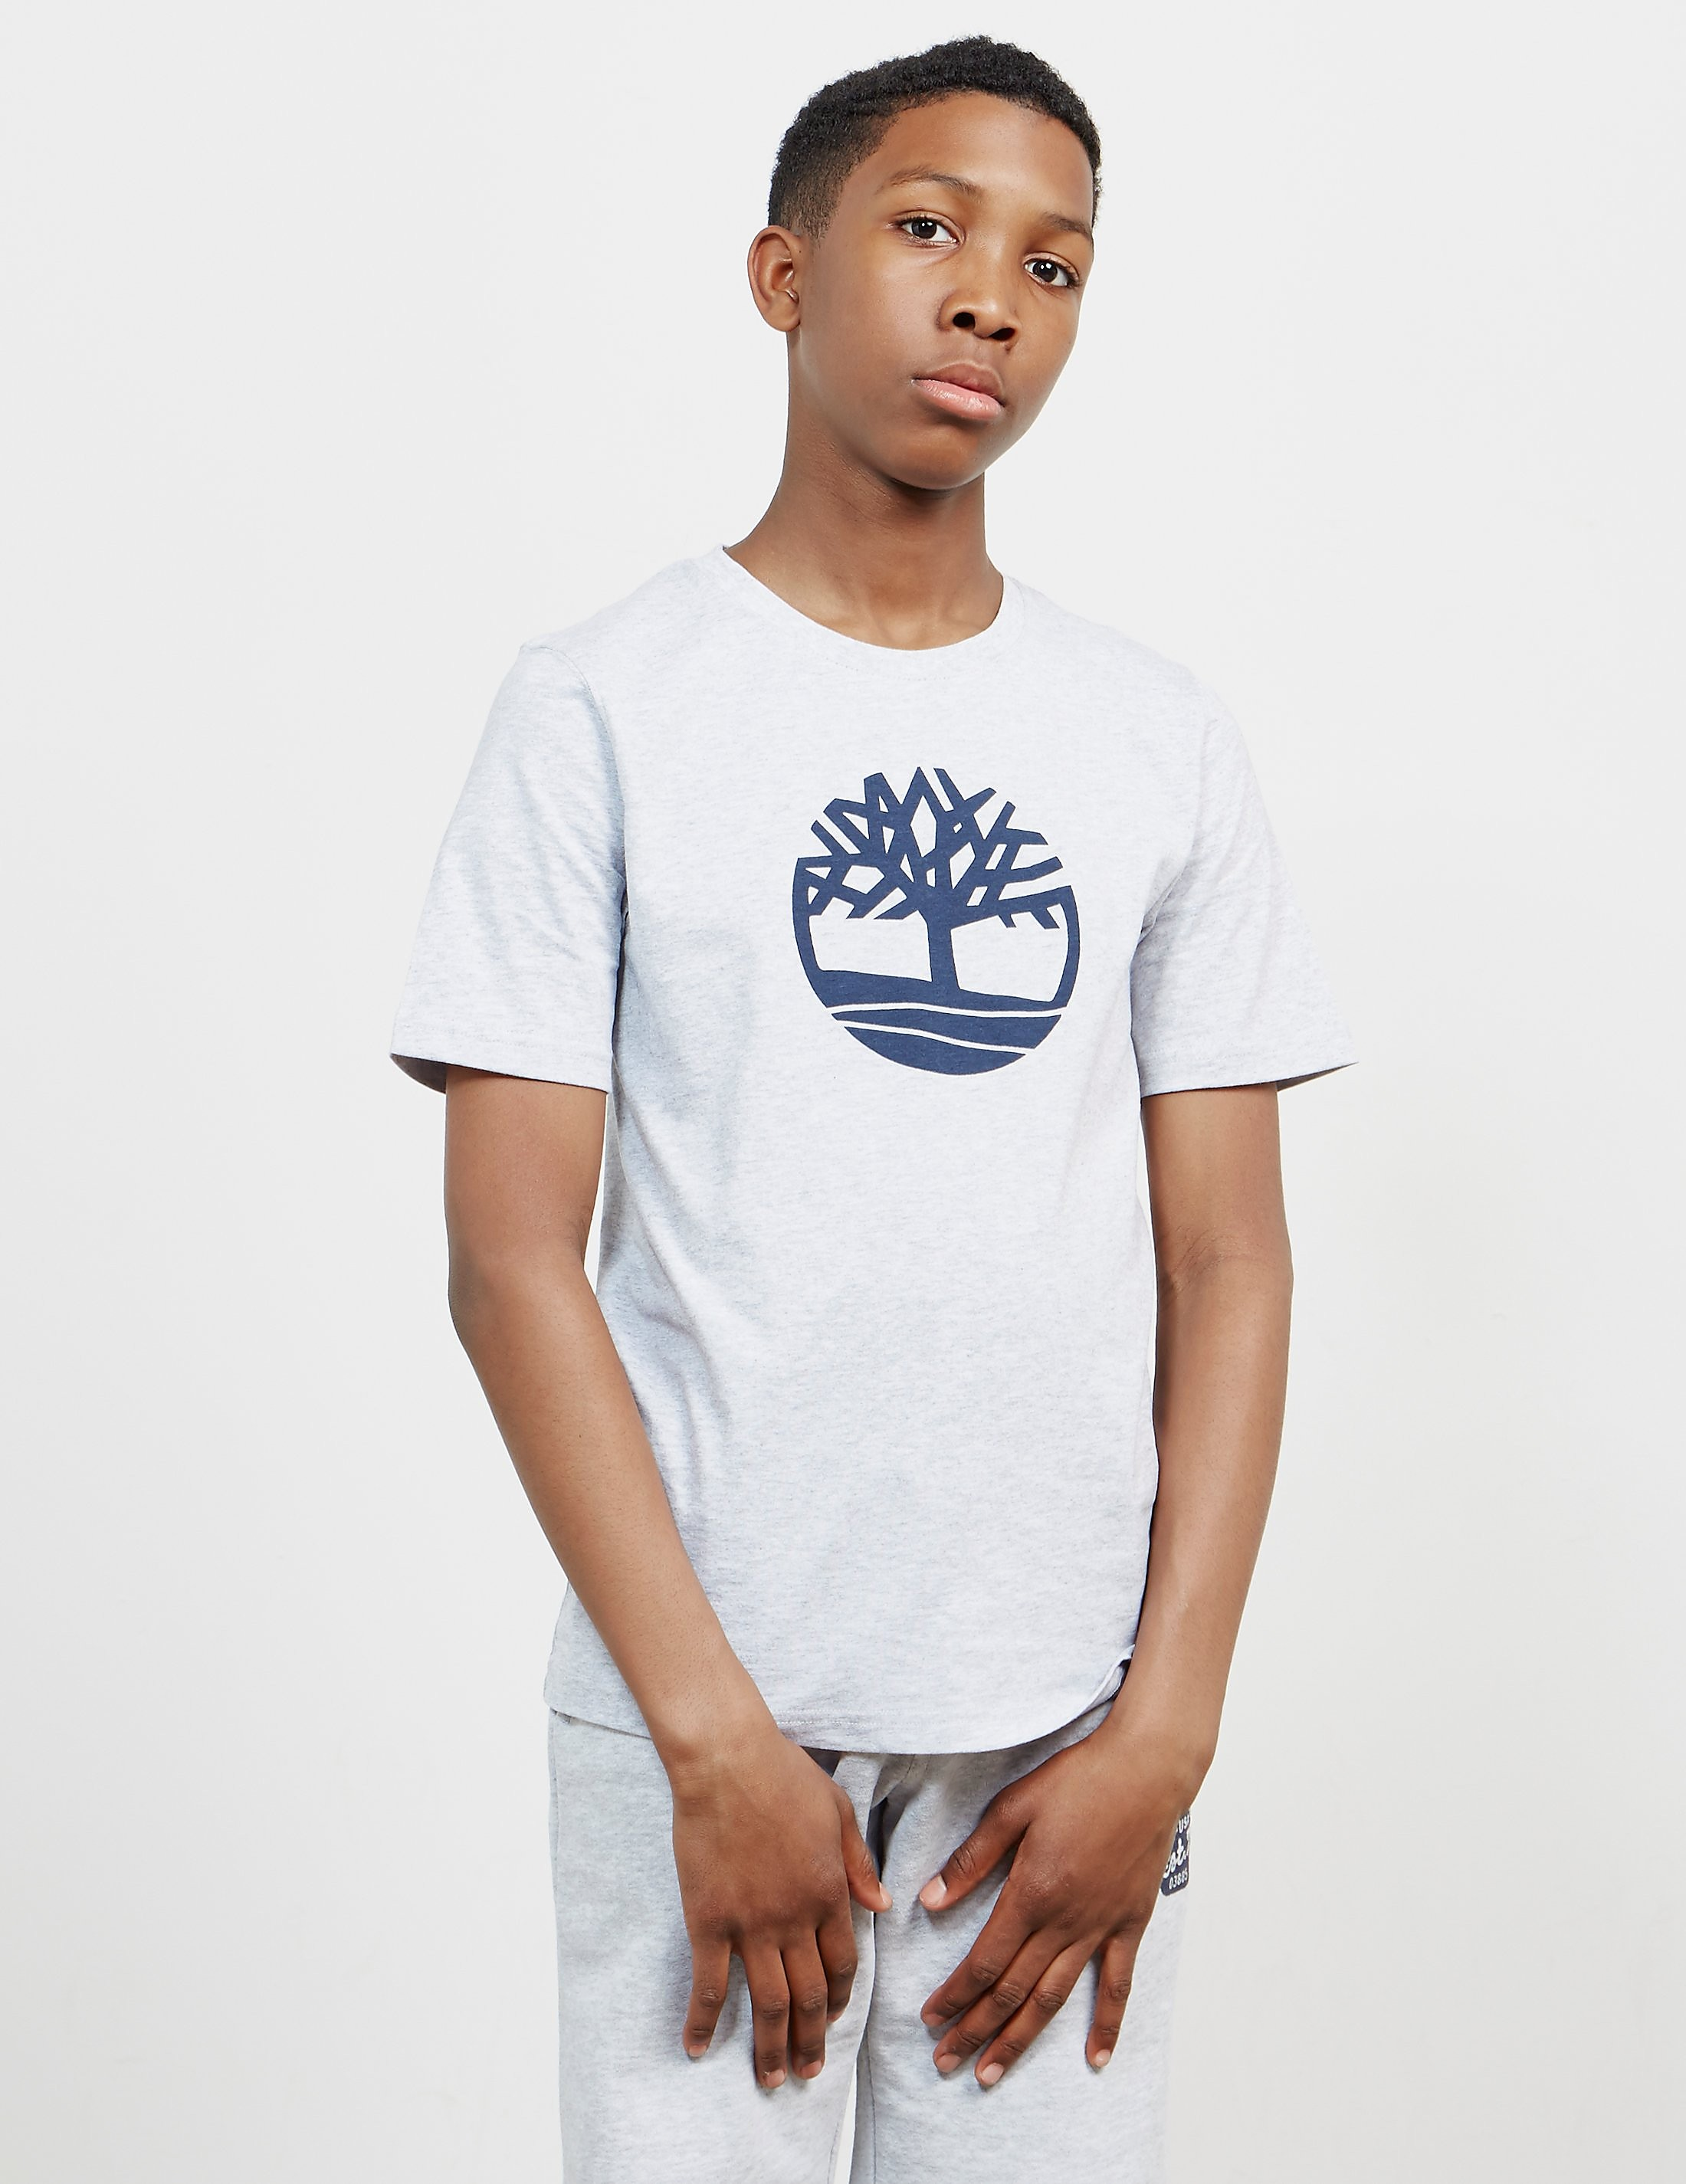 Timberland Tree Short Sleeve T-Shirt